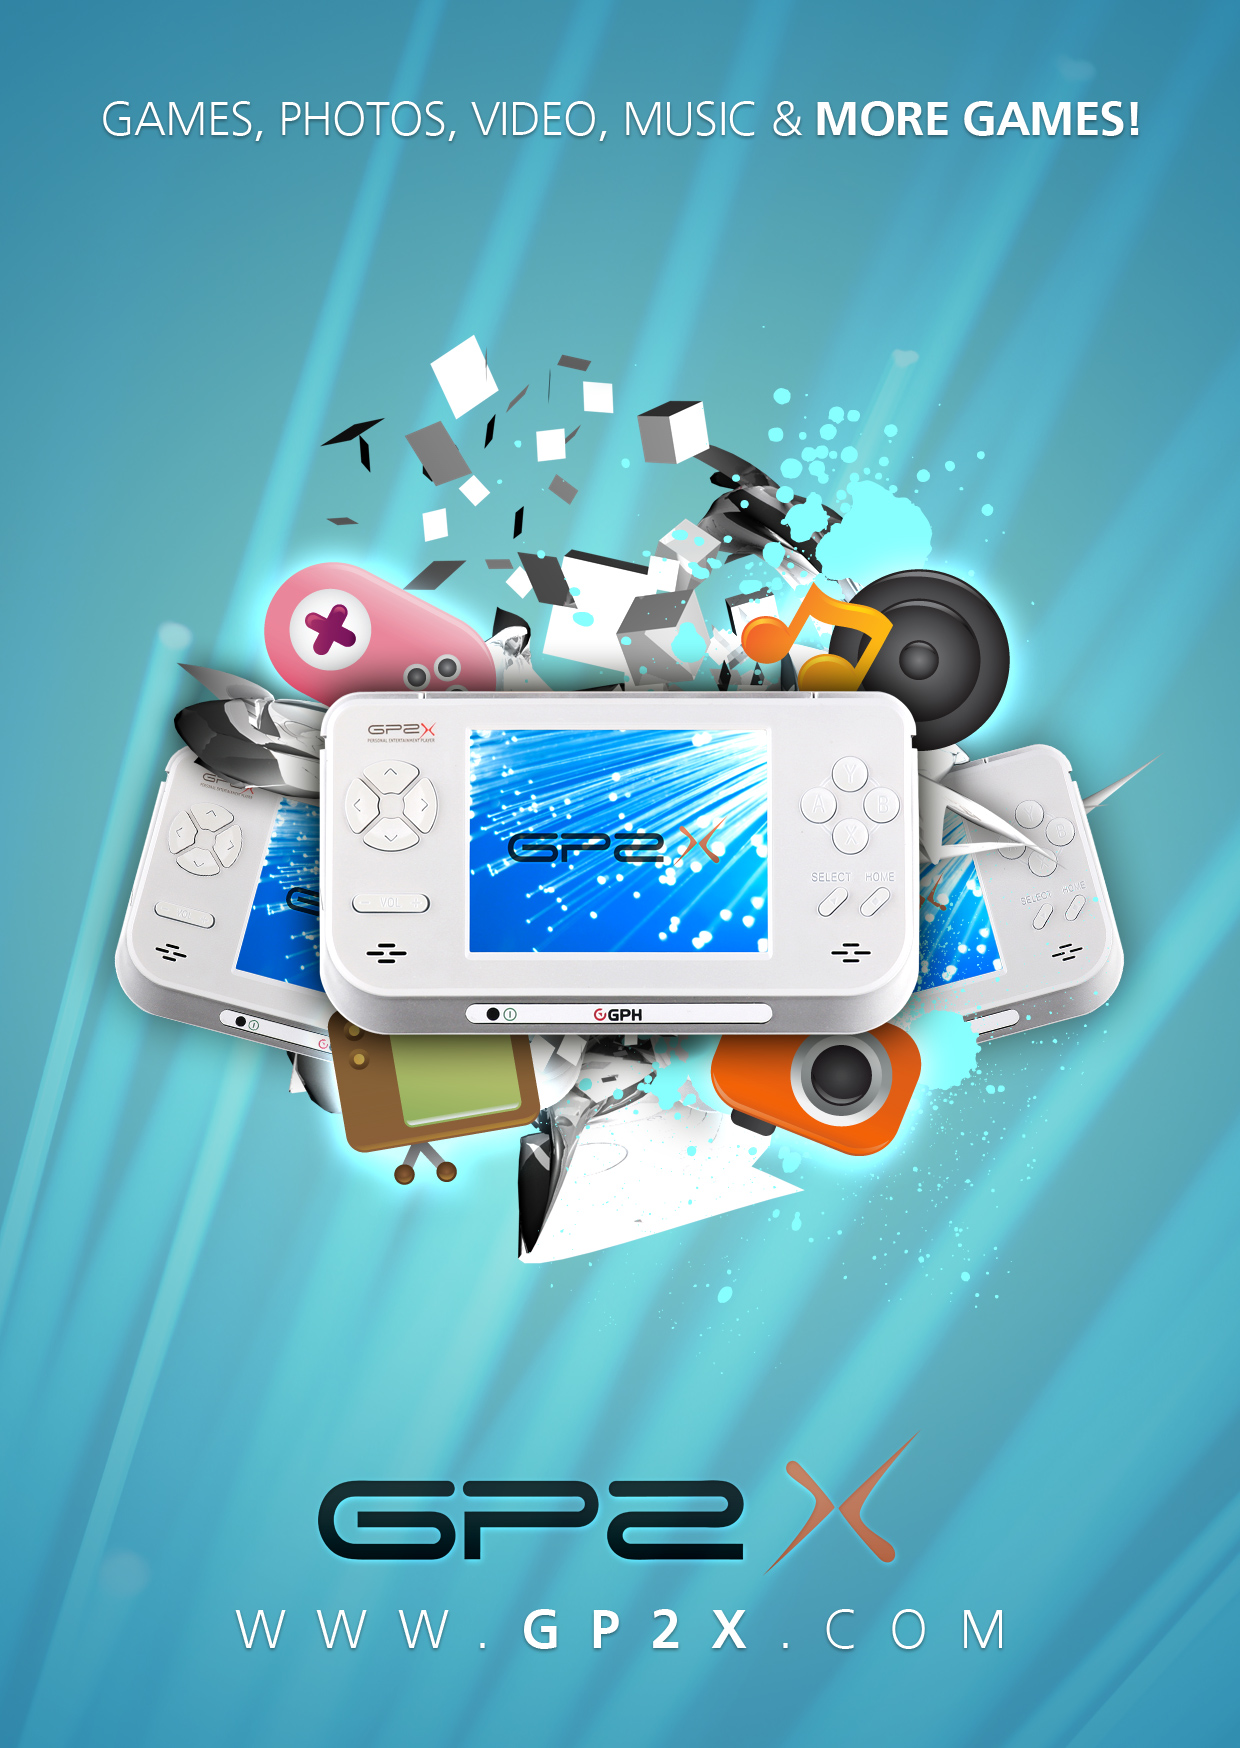 Designing a portable gaming device poster photoshop lady gp2x console advertisement design baditri Images